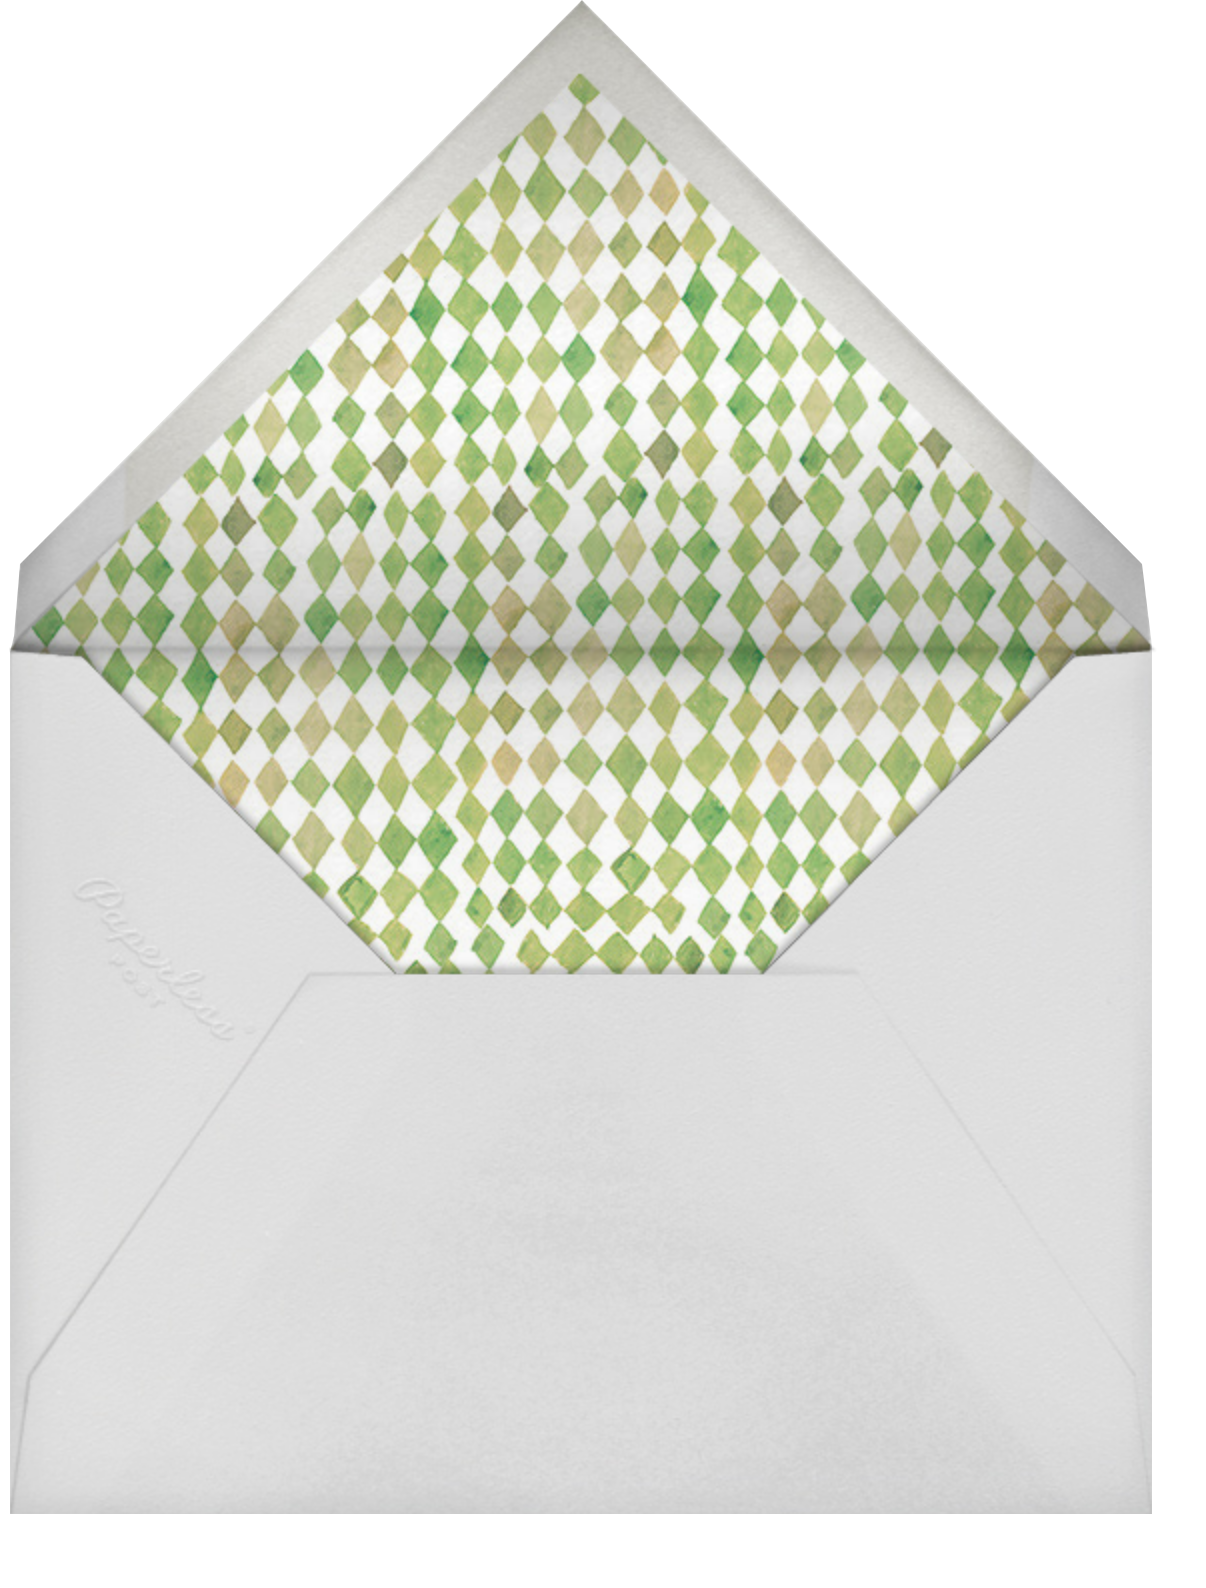 Lively Leaves - Happy Menocal - General entertaining - envelope back